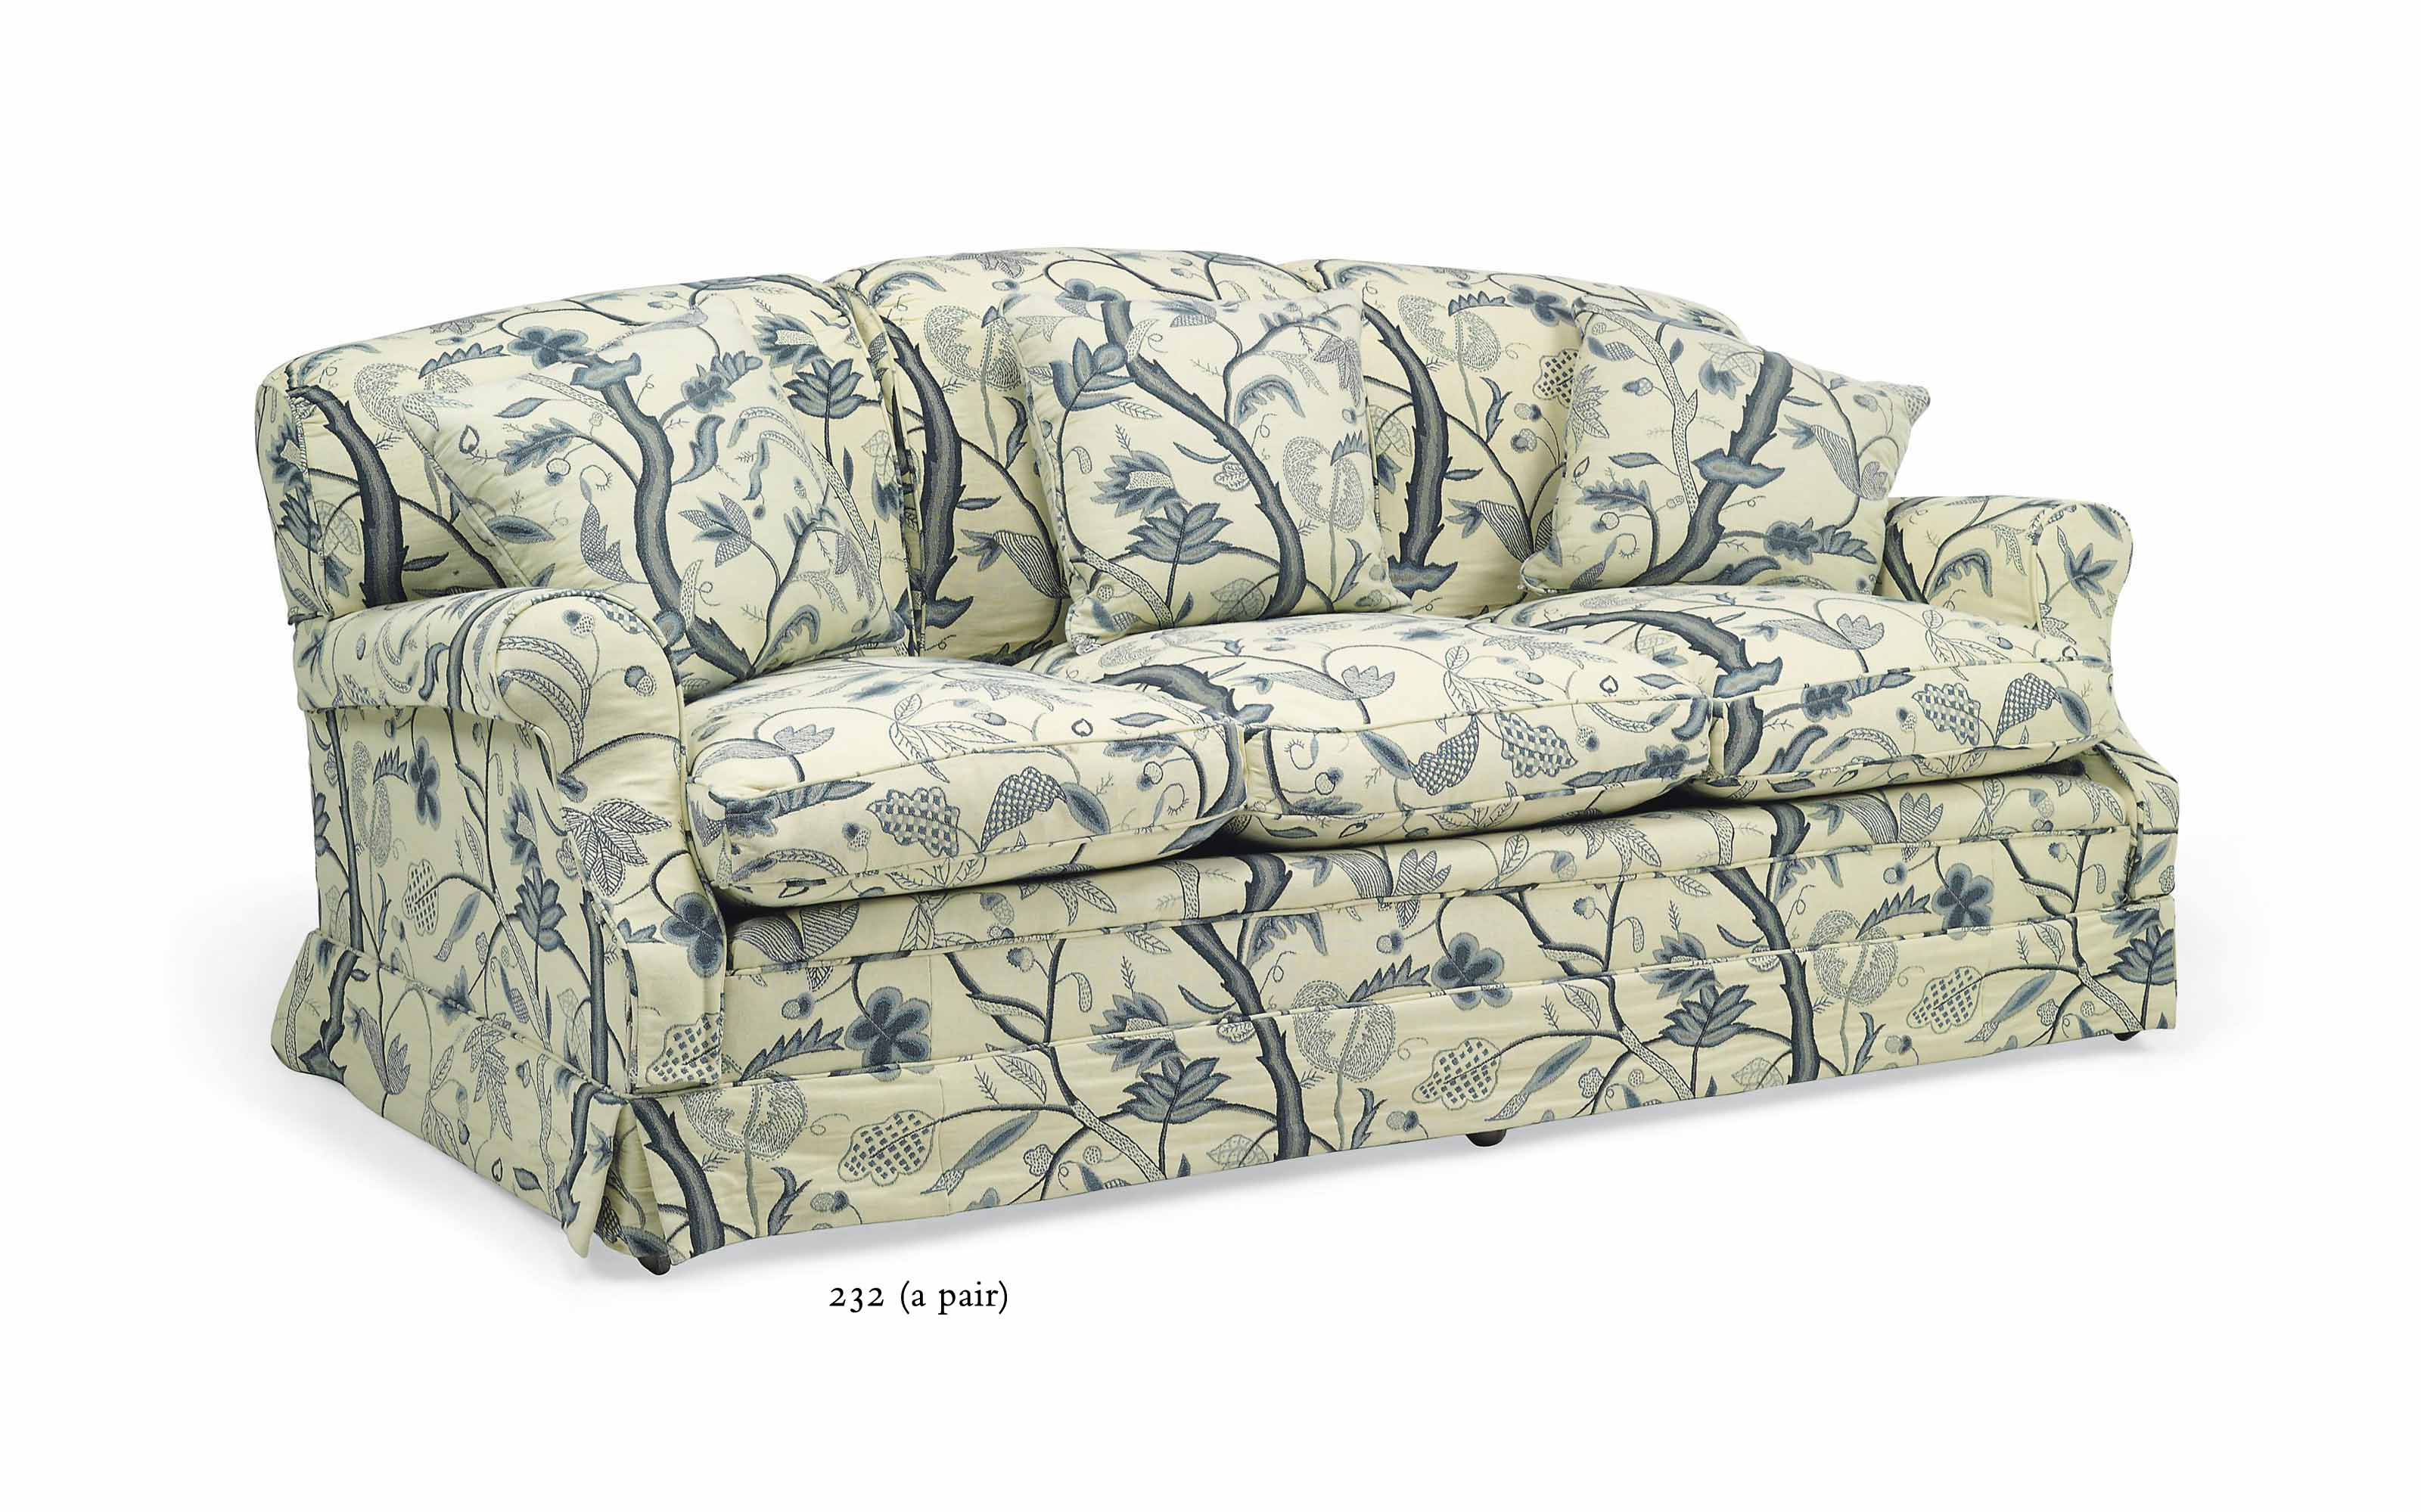 A PAIR OF 'HOWARD' CREWELWORK THREE-SEAT SOFAS